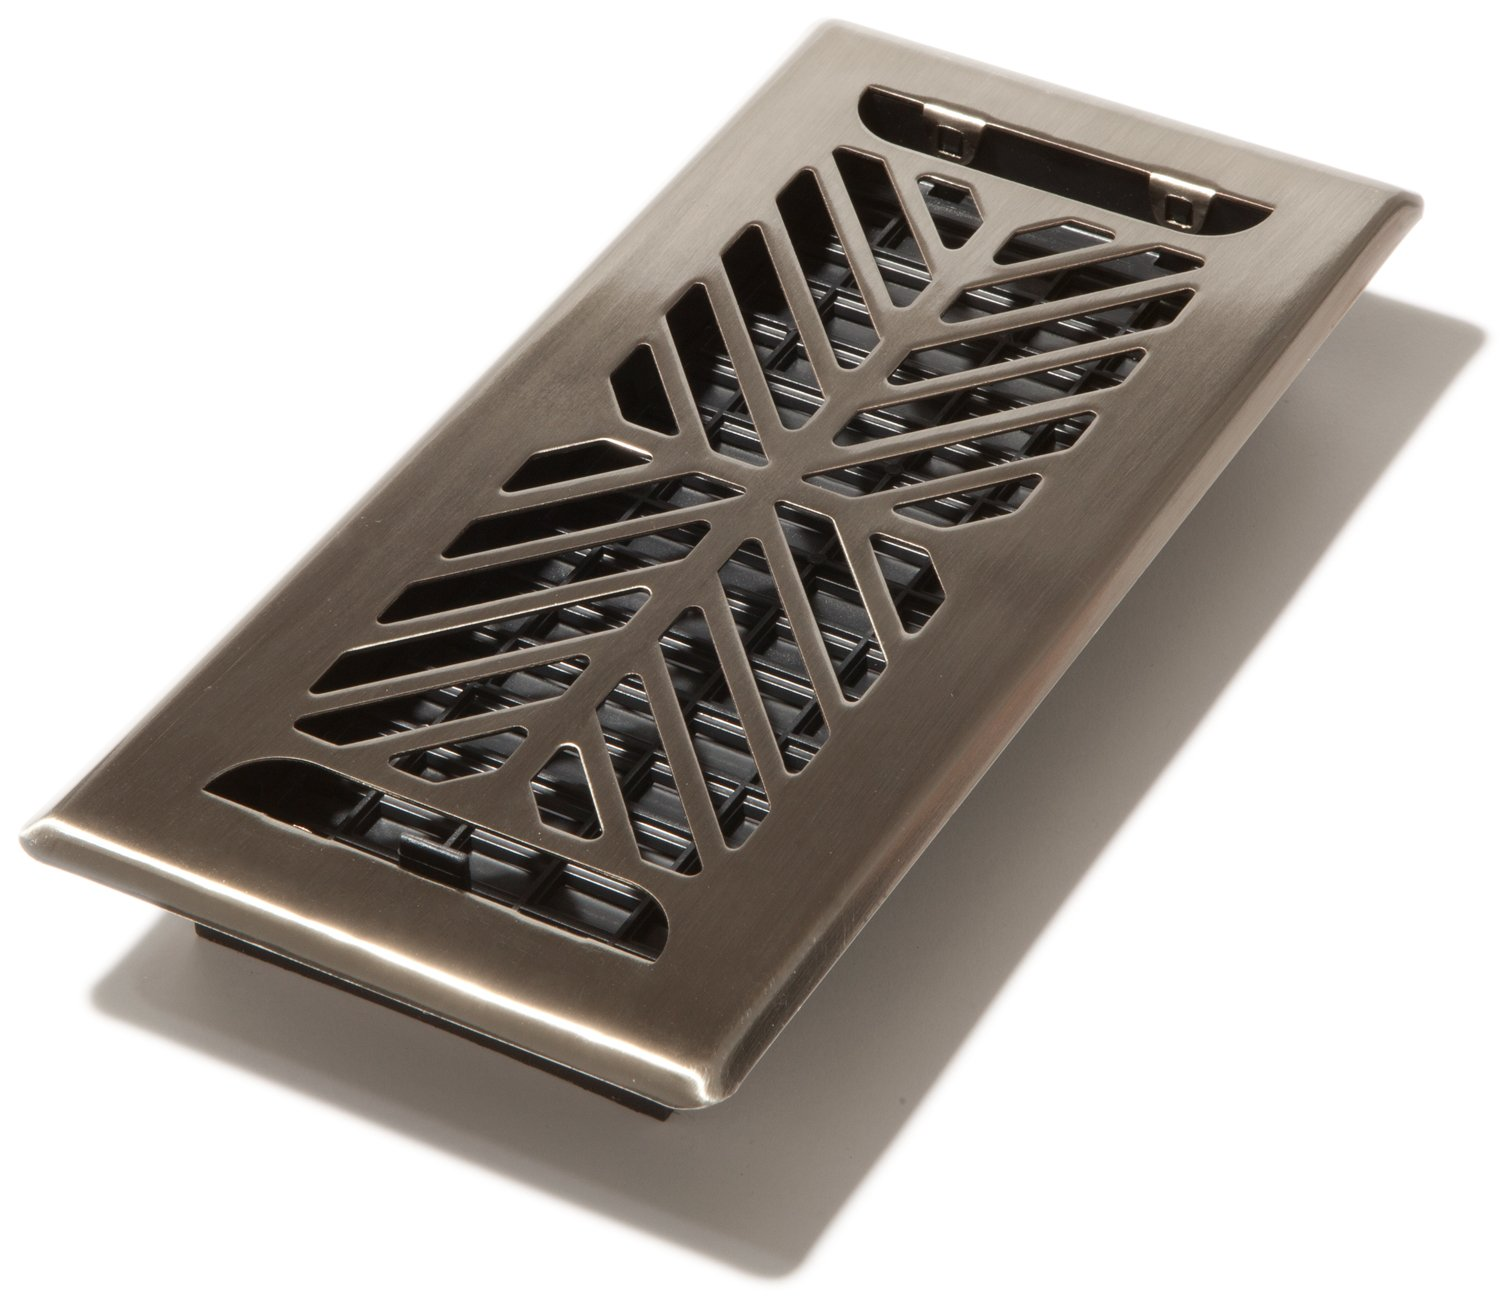 Decor Grates AUK410-NKL Chevron 1.33 Plated Nickel Floor Register, 4 by 10 4 by 10 Decor Grates - CA